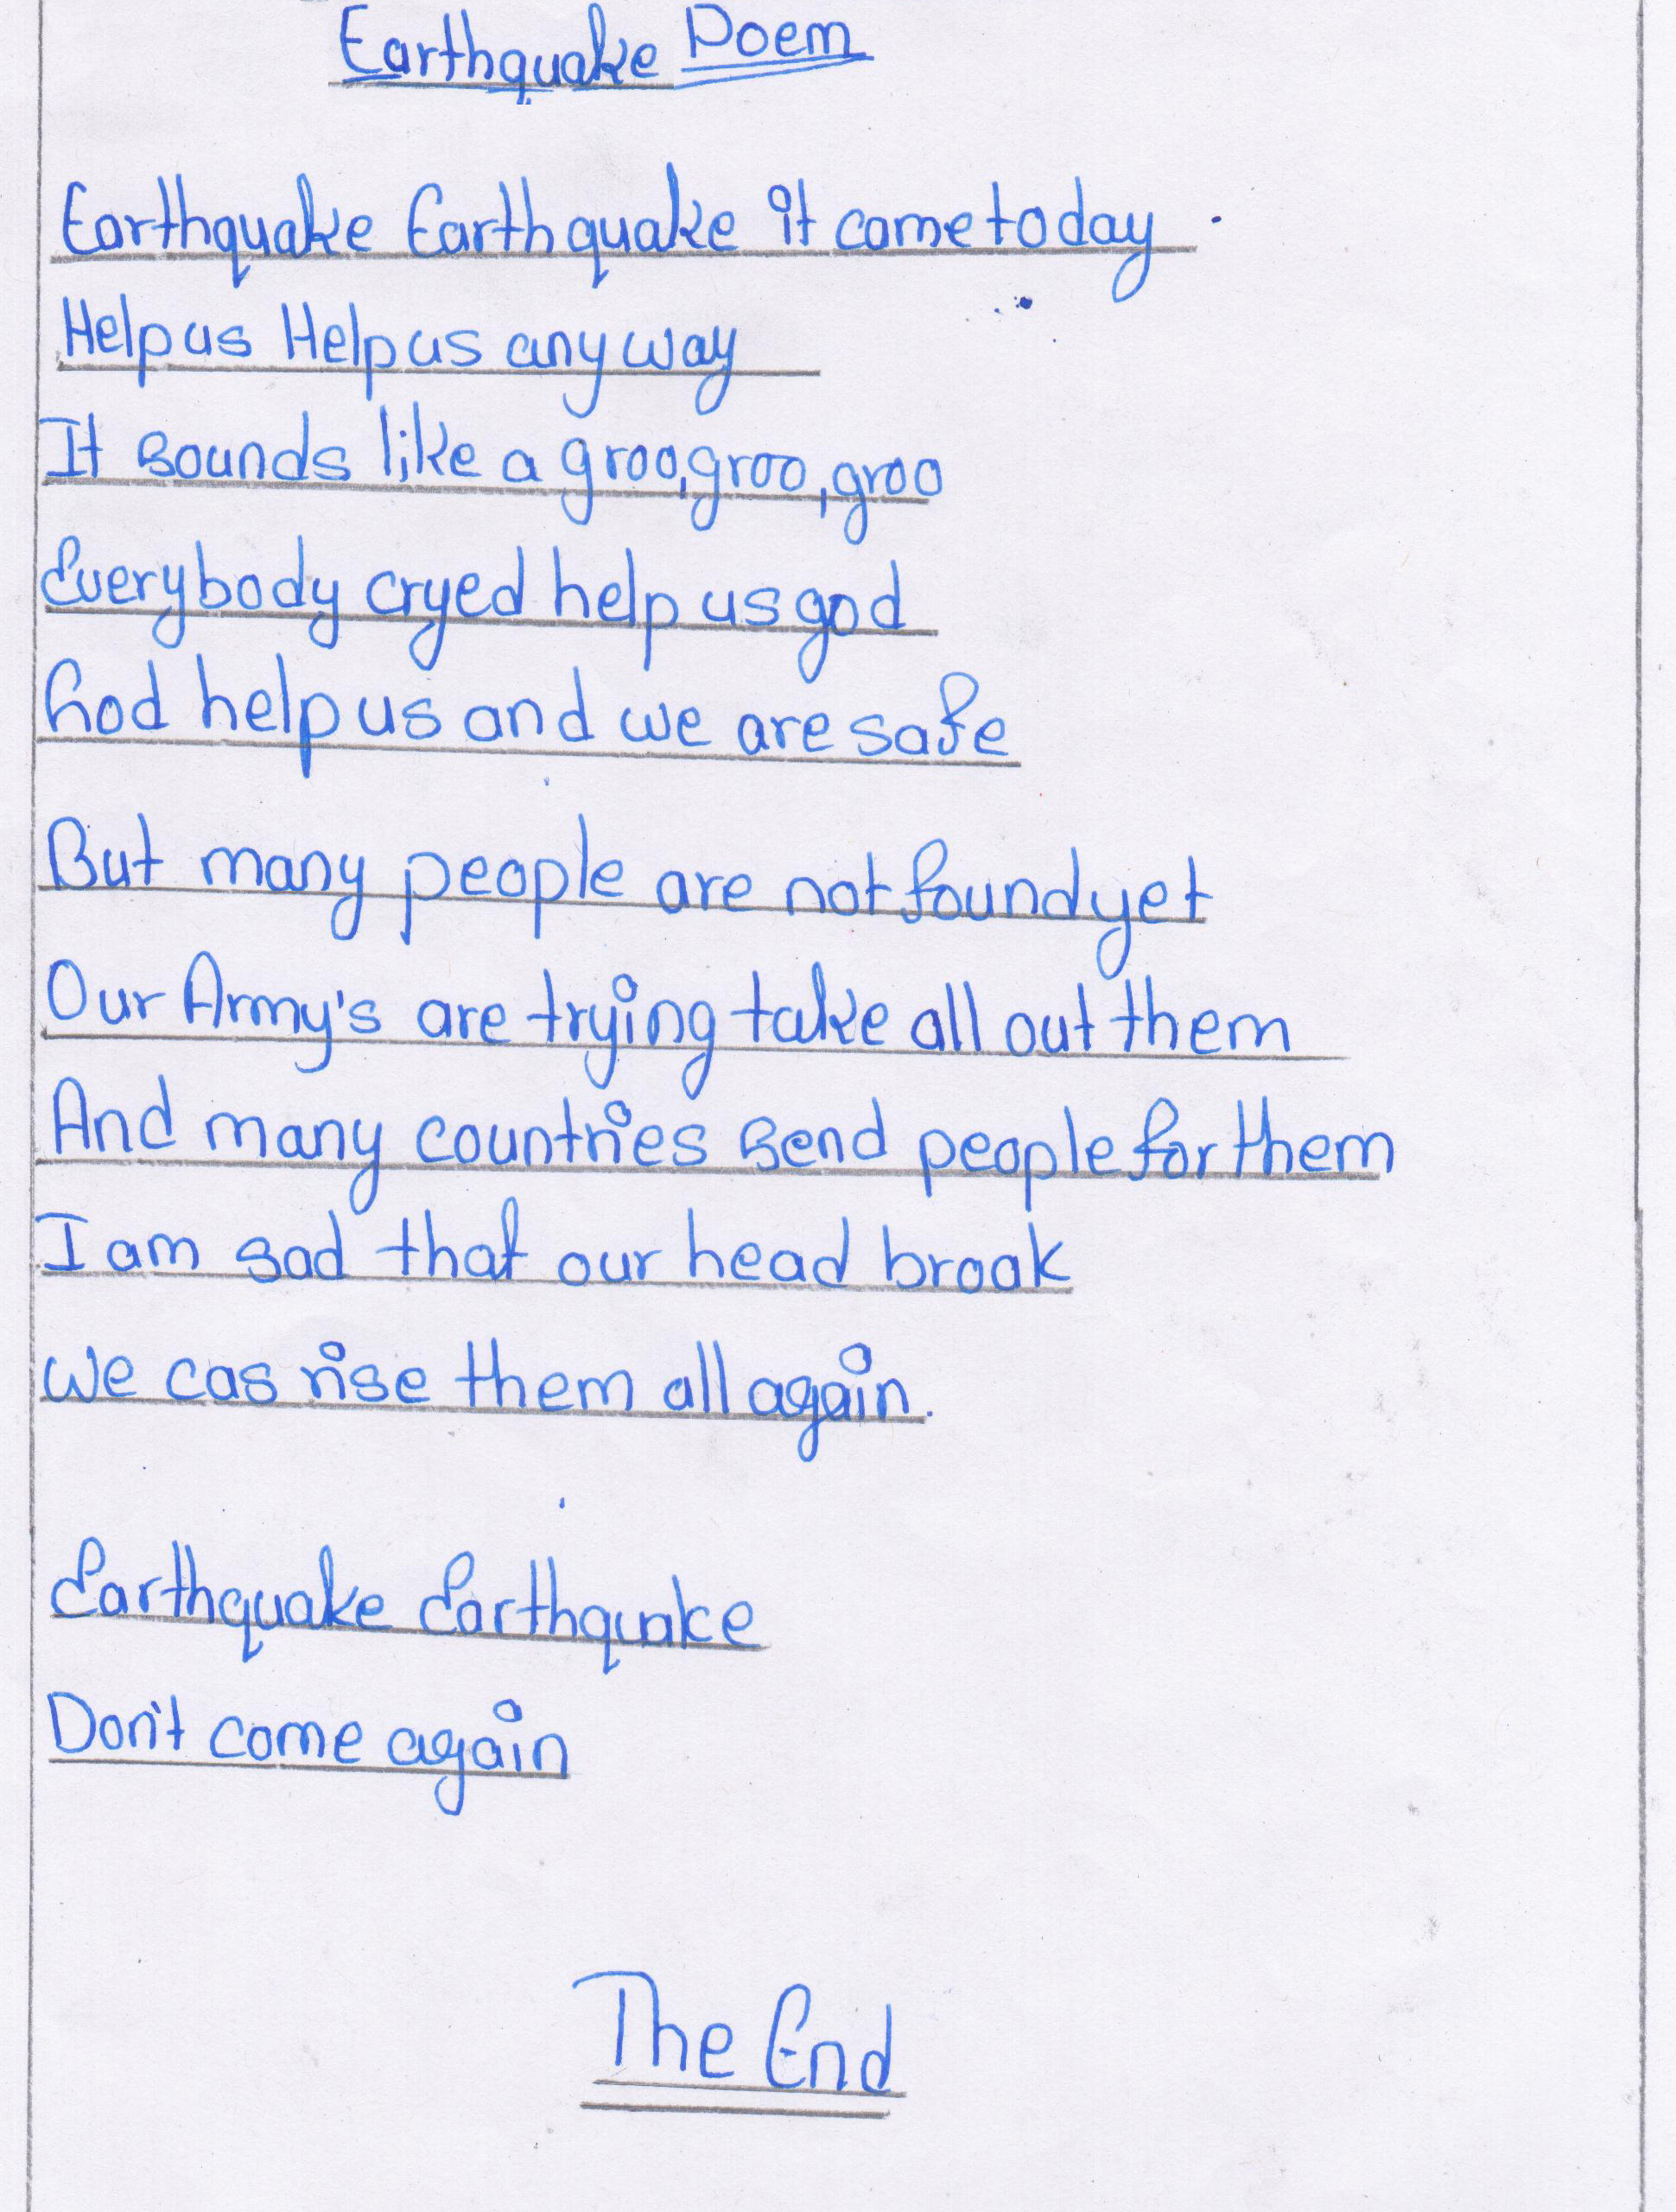 essays kidzera earthquake poem by sushmita basnet